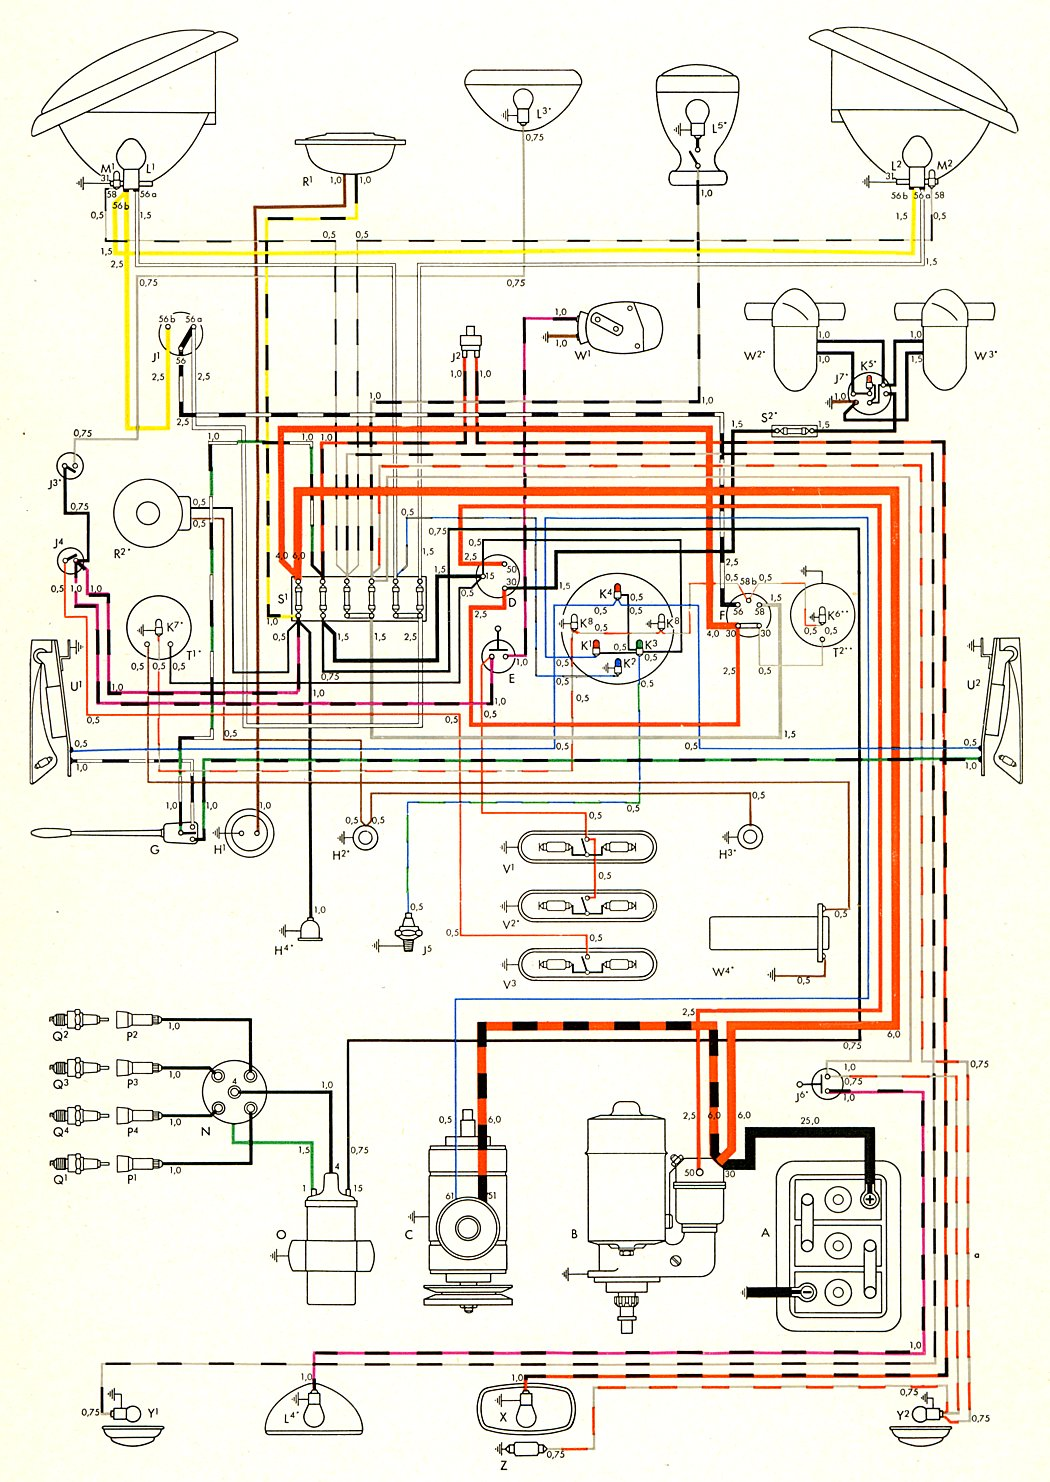 bus_nov57 1957 bus wiring diagram thegoldenbug com 1957 vw bug wiring diagram at edmiracle.co